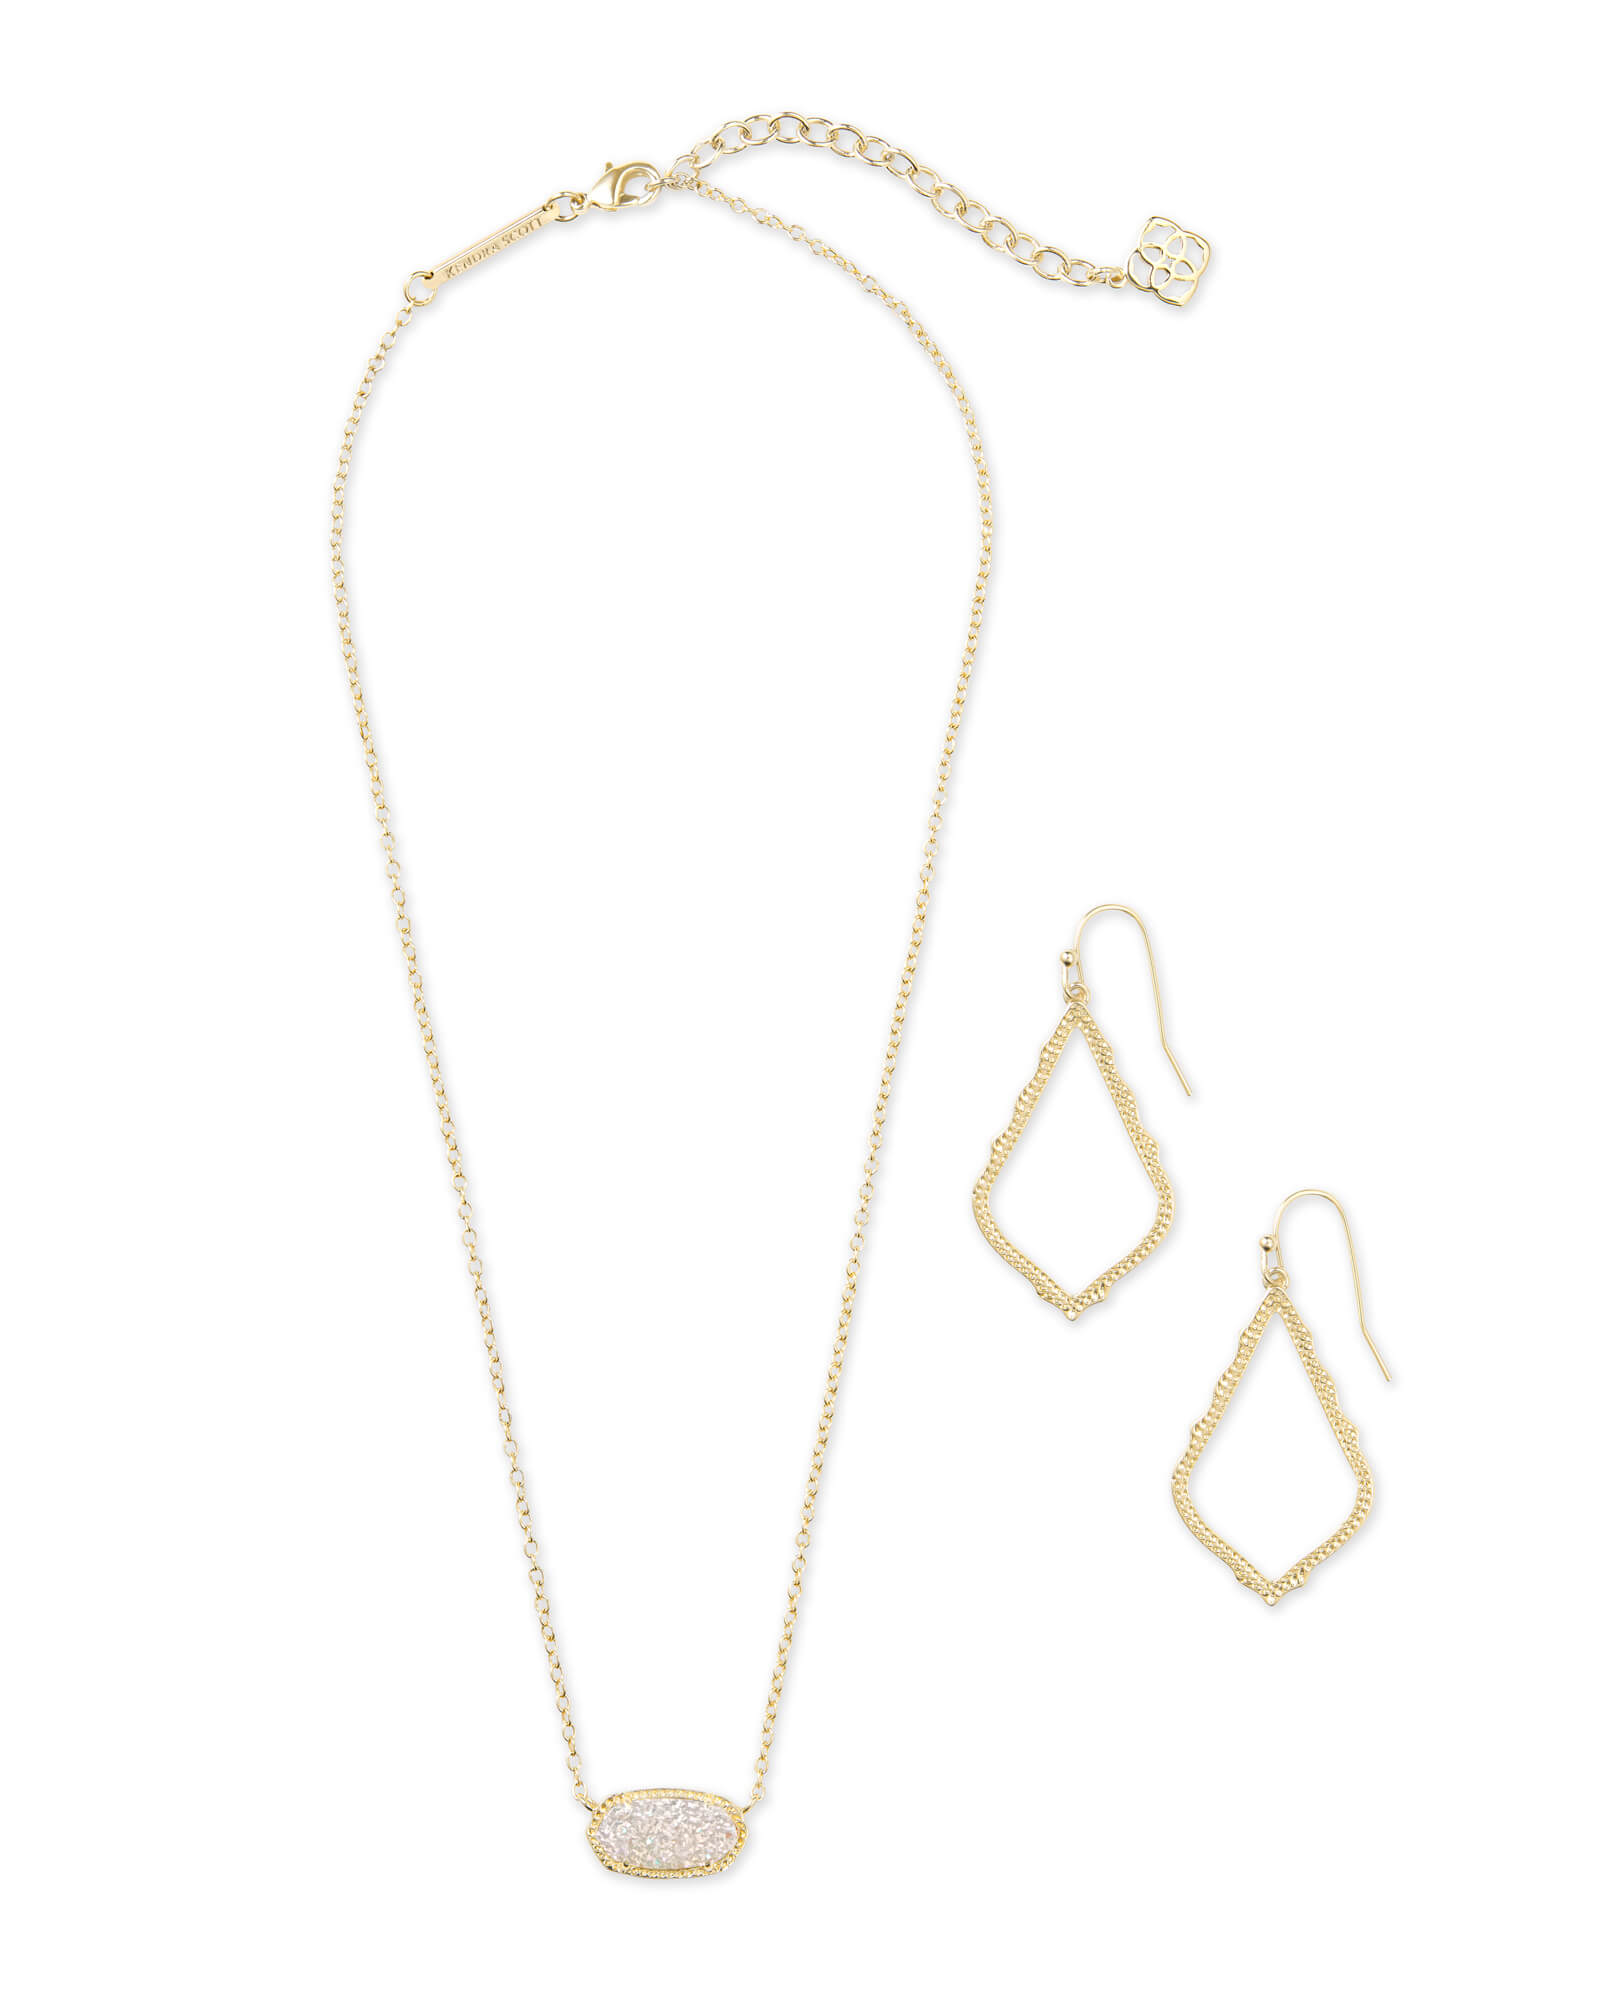 Sophia Earrings and Elisa Necklace Set in Gold